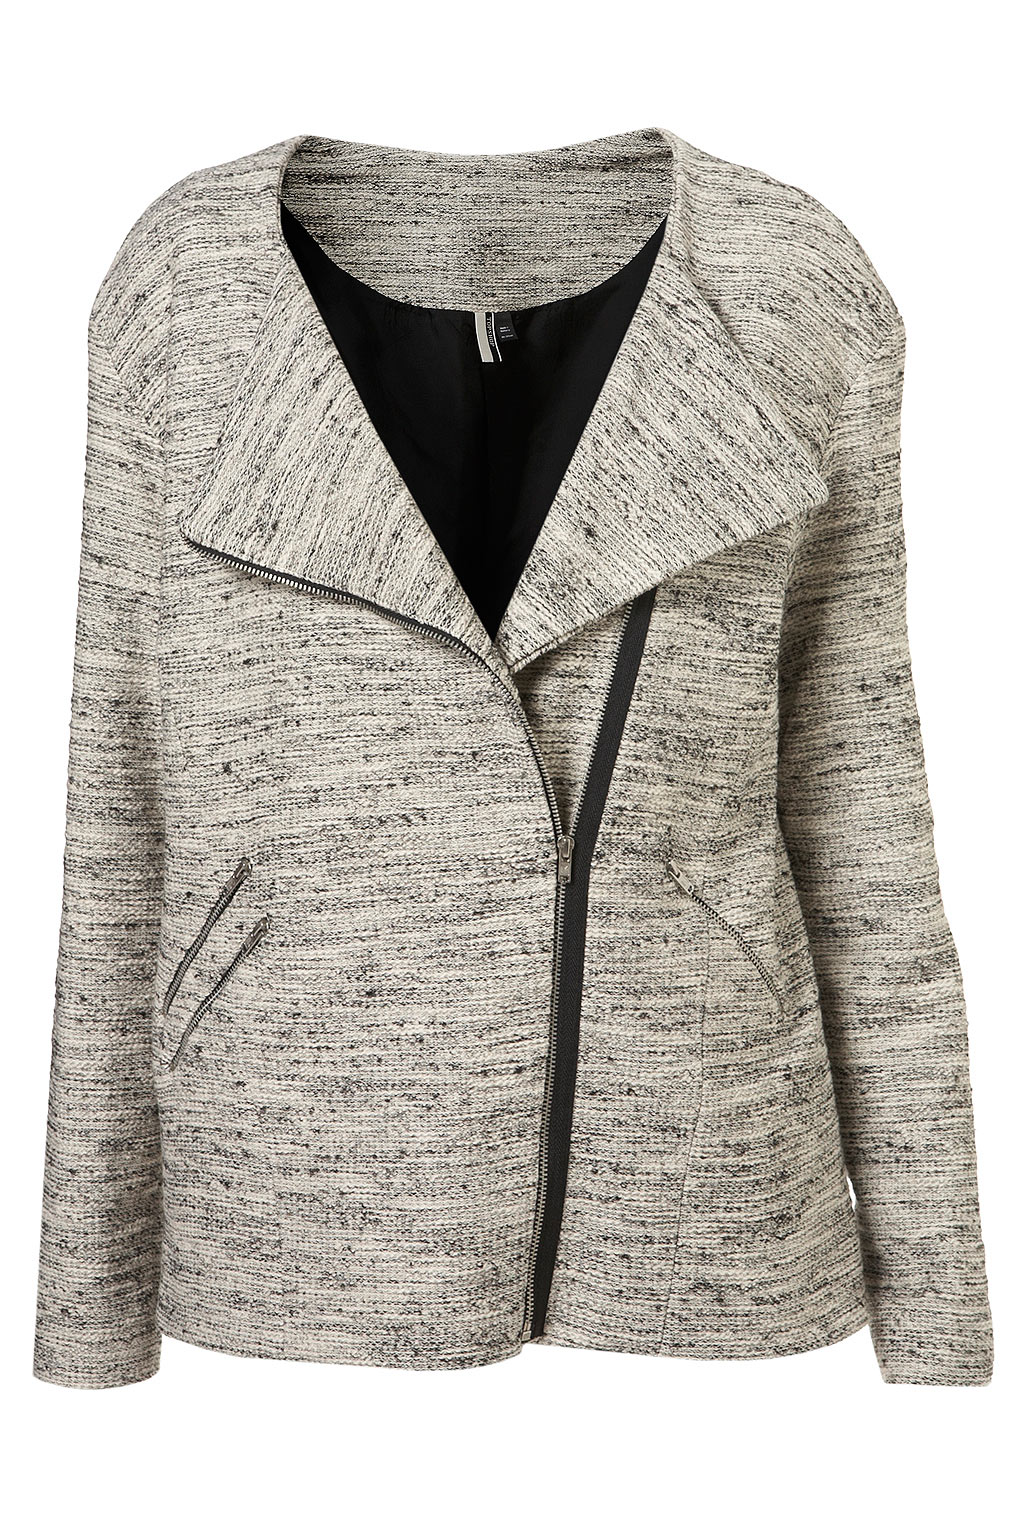 In a classic biker shape, with an asymmetric zip-up front fastening and silver trims. Let this jacket do the talking and throw on over a simple blouse, skinny jeans and a pair of killer heels for that added glam.